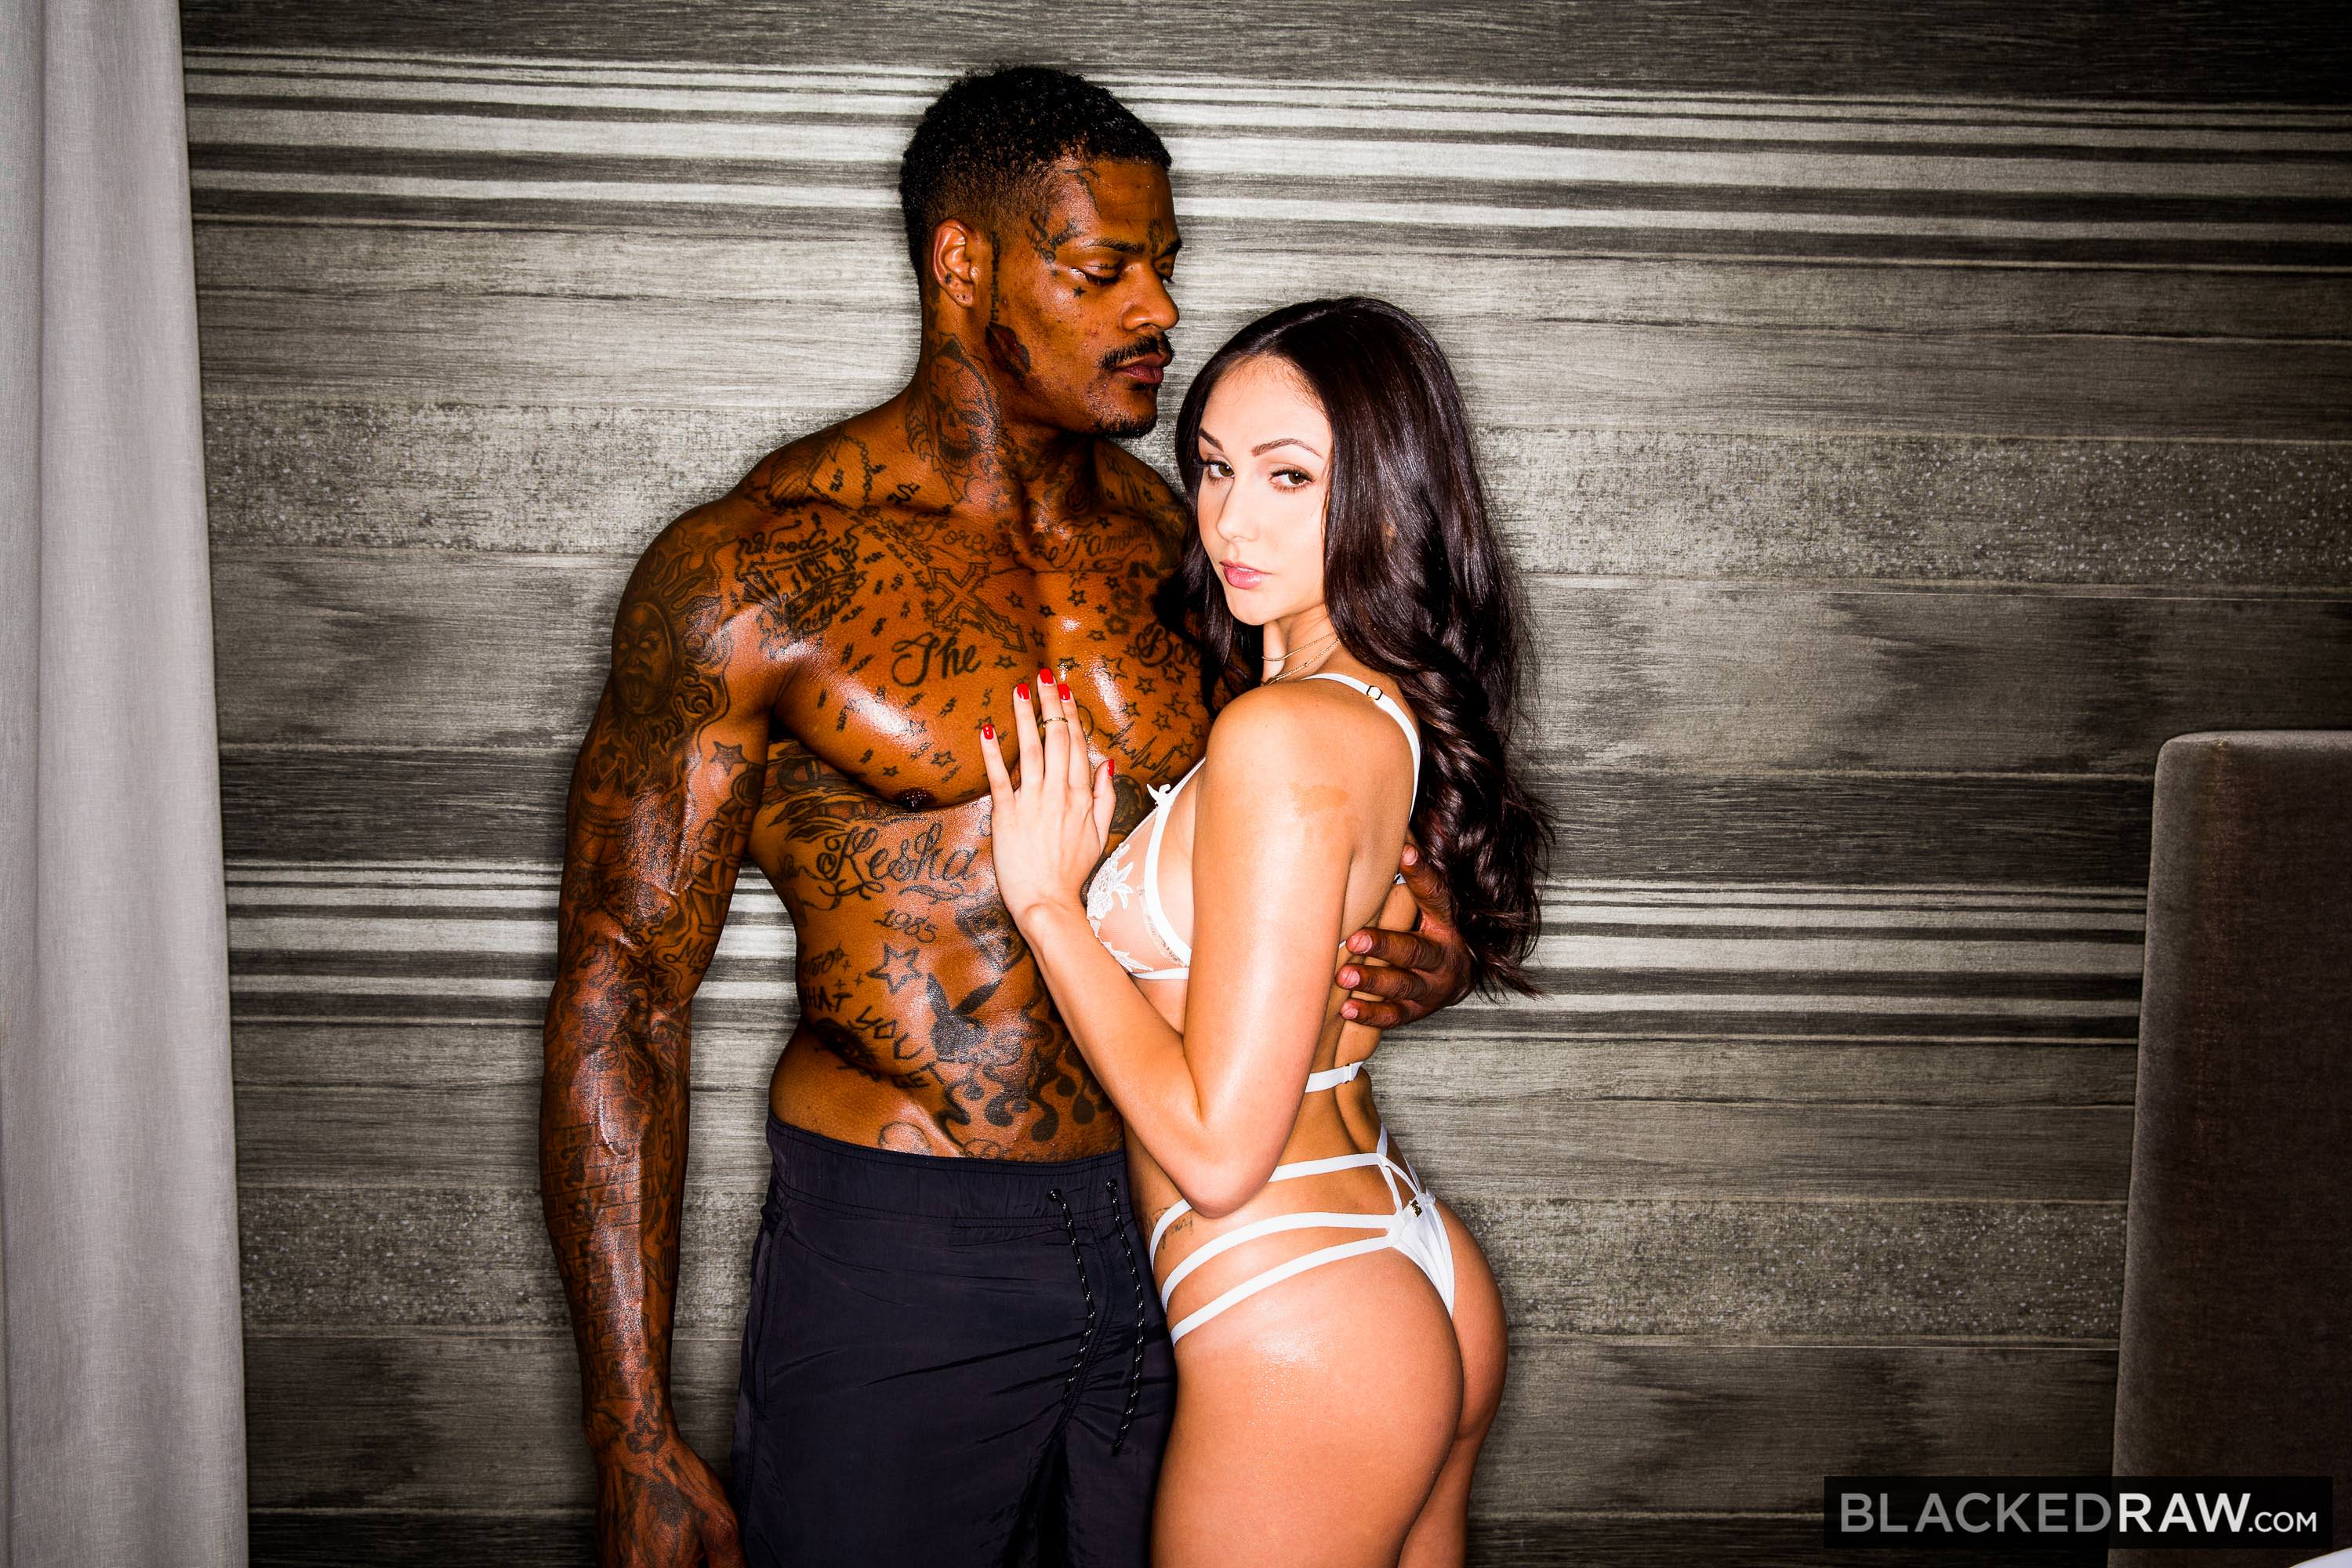 Blackedraw abigail mac takes on biggest bbc in the world - 2 6